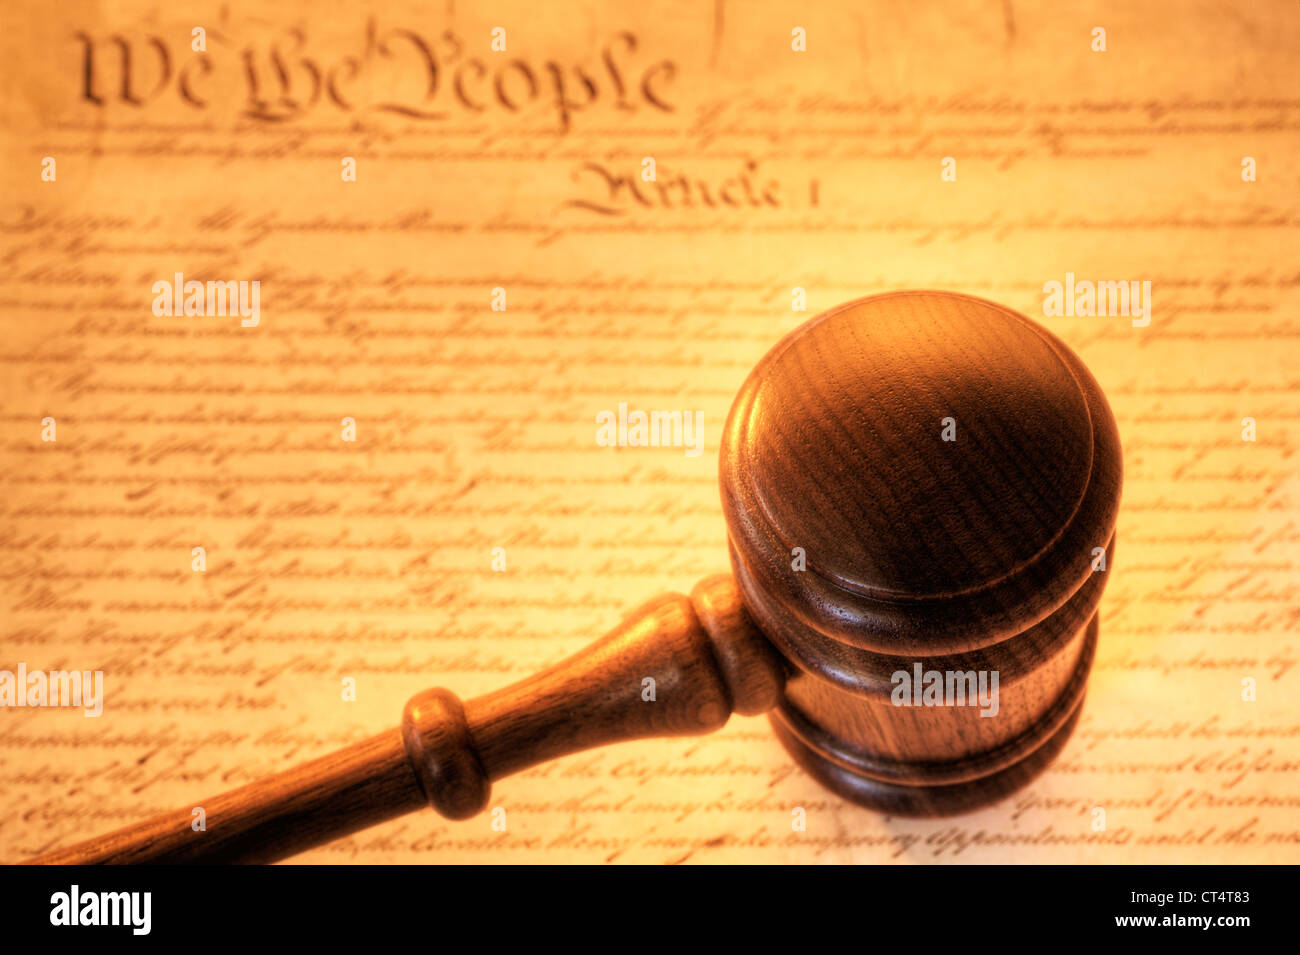 Concept of American justice, gavel on top of constitution in brown tones. - Stock Image